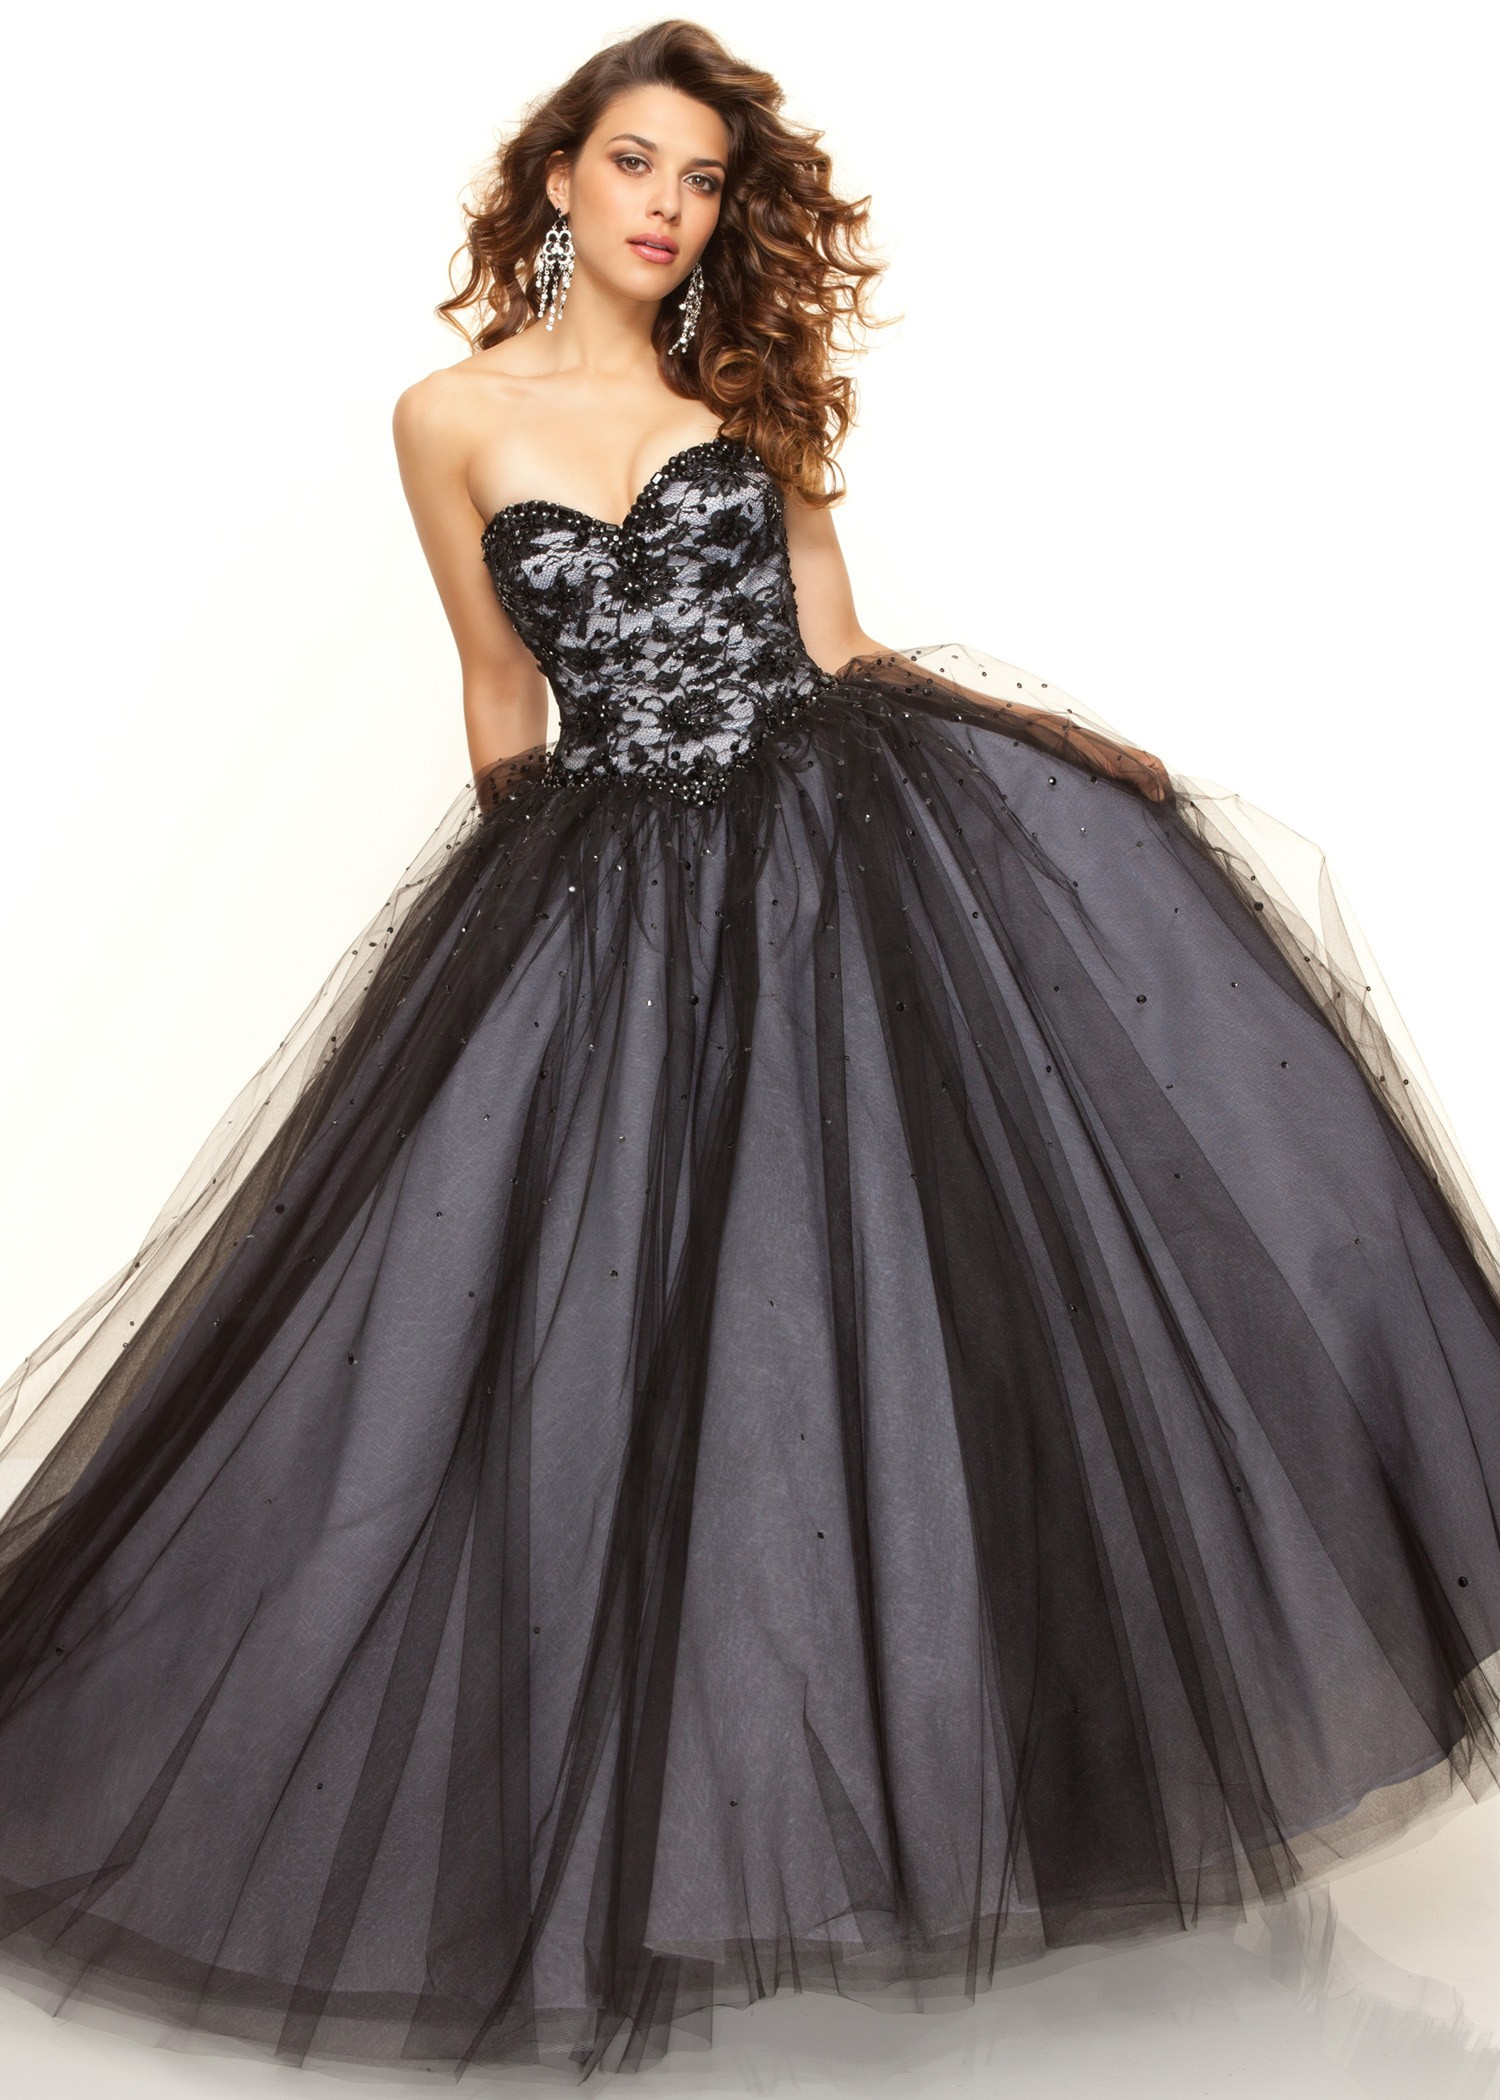 d2e8bfd23238 Paparazzi by Mori Lee 93033 - Beaded Black Ball Gown Dress, 2013 ...